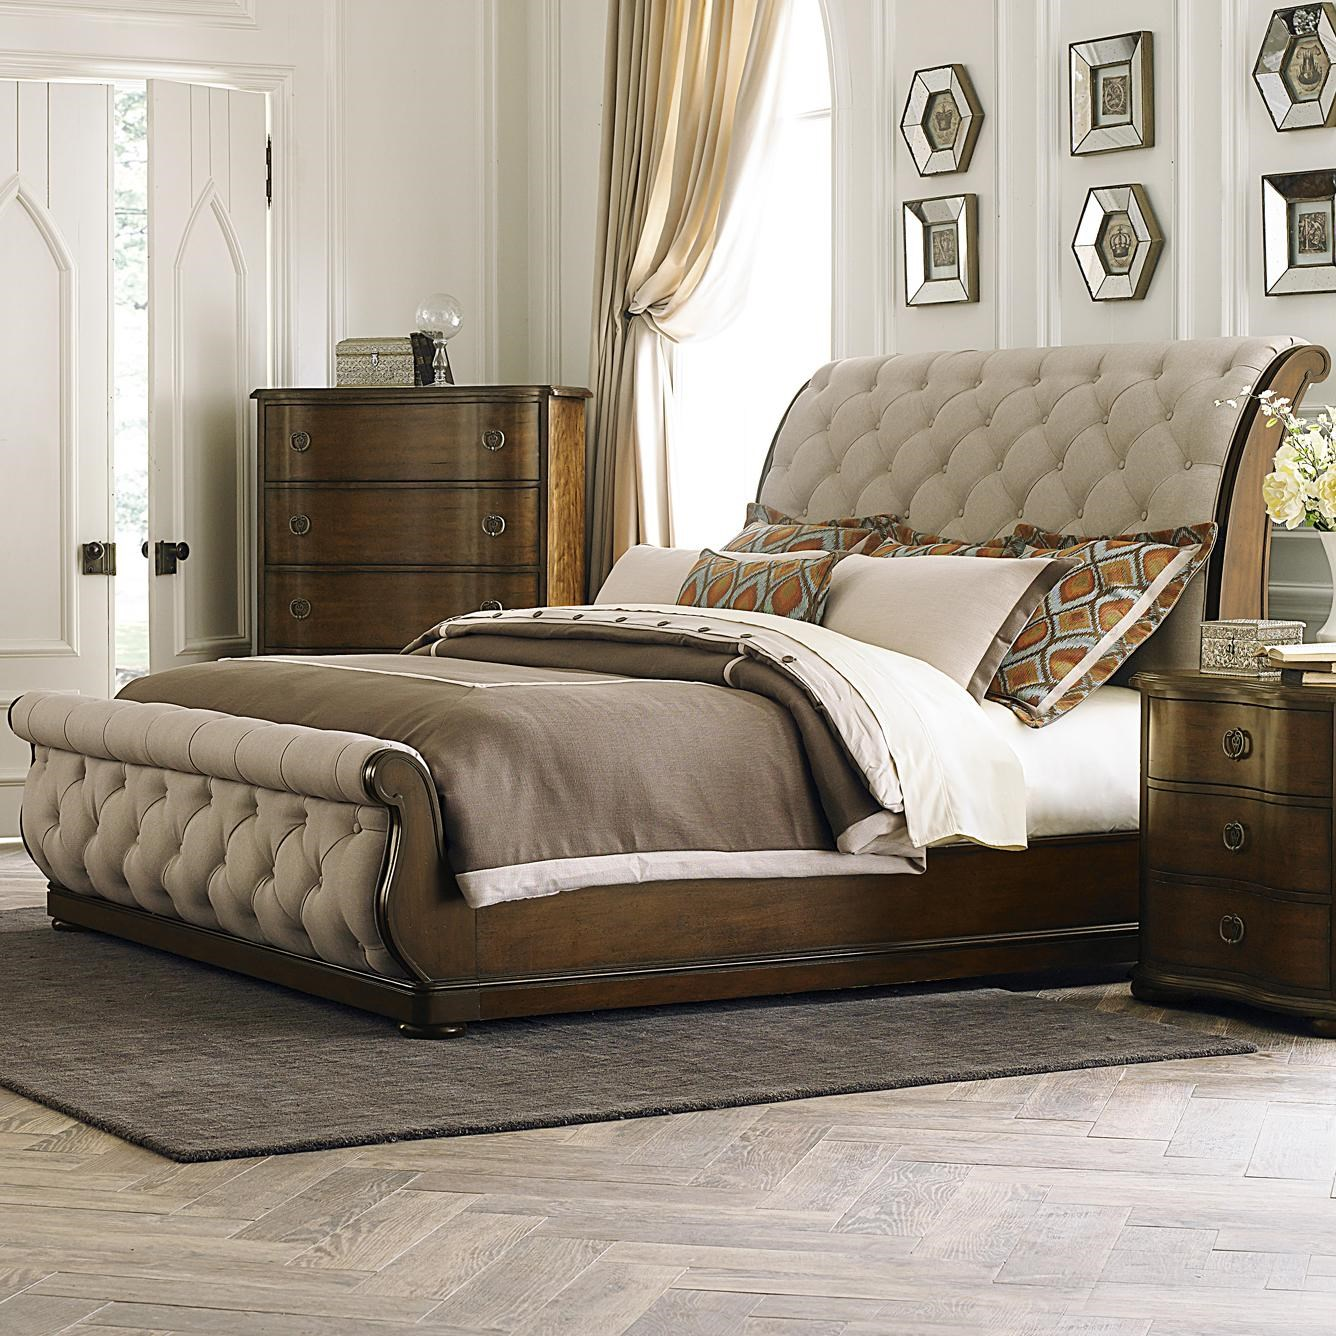 sleigh bed furniture. Liberty Furniture Cotswold Queen Sleigh Bed E